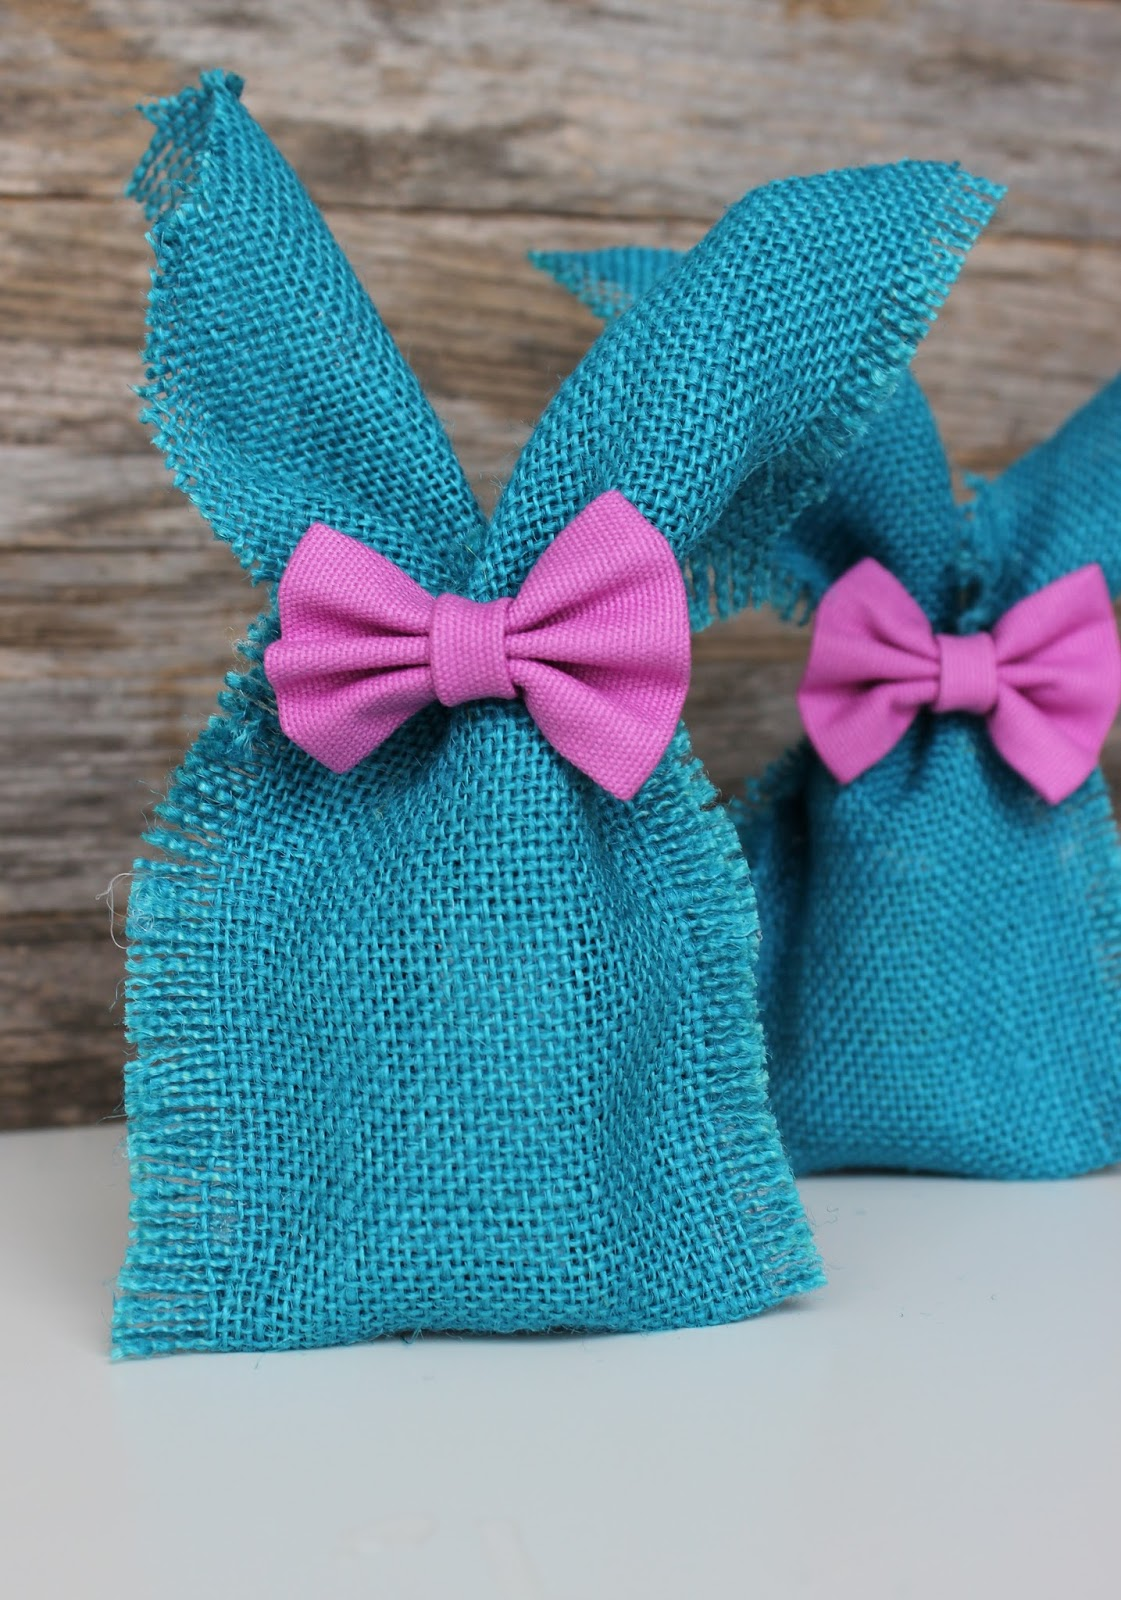 DIY Easter Ideas: No-Sew Burlap Bunny Ear Gift Bags